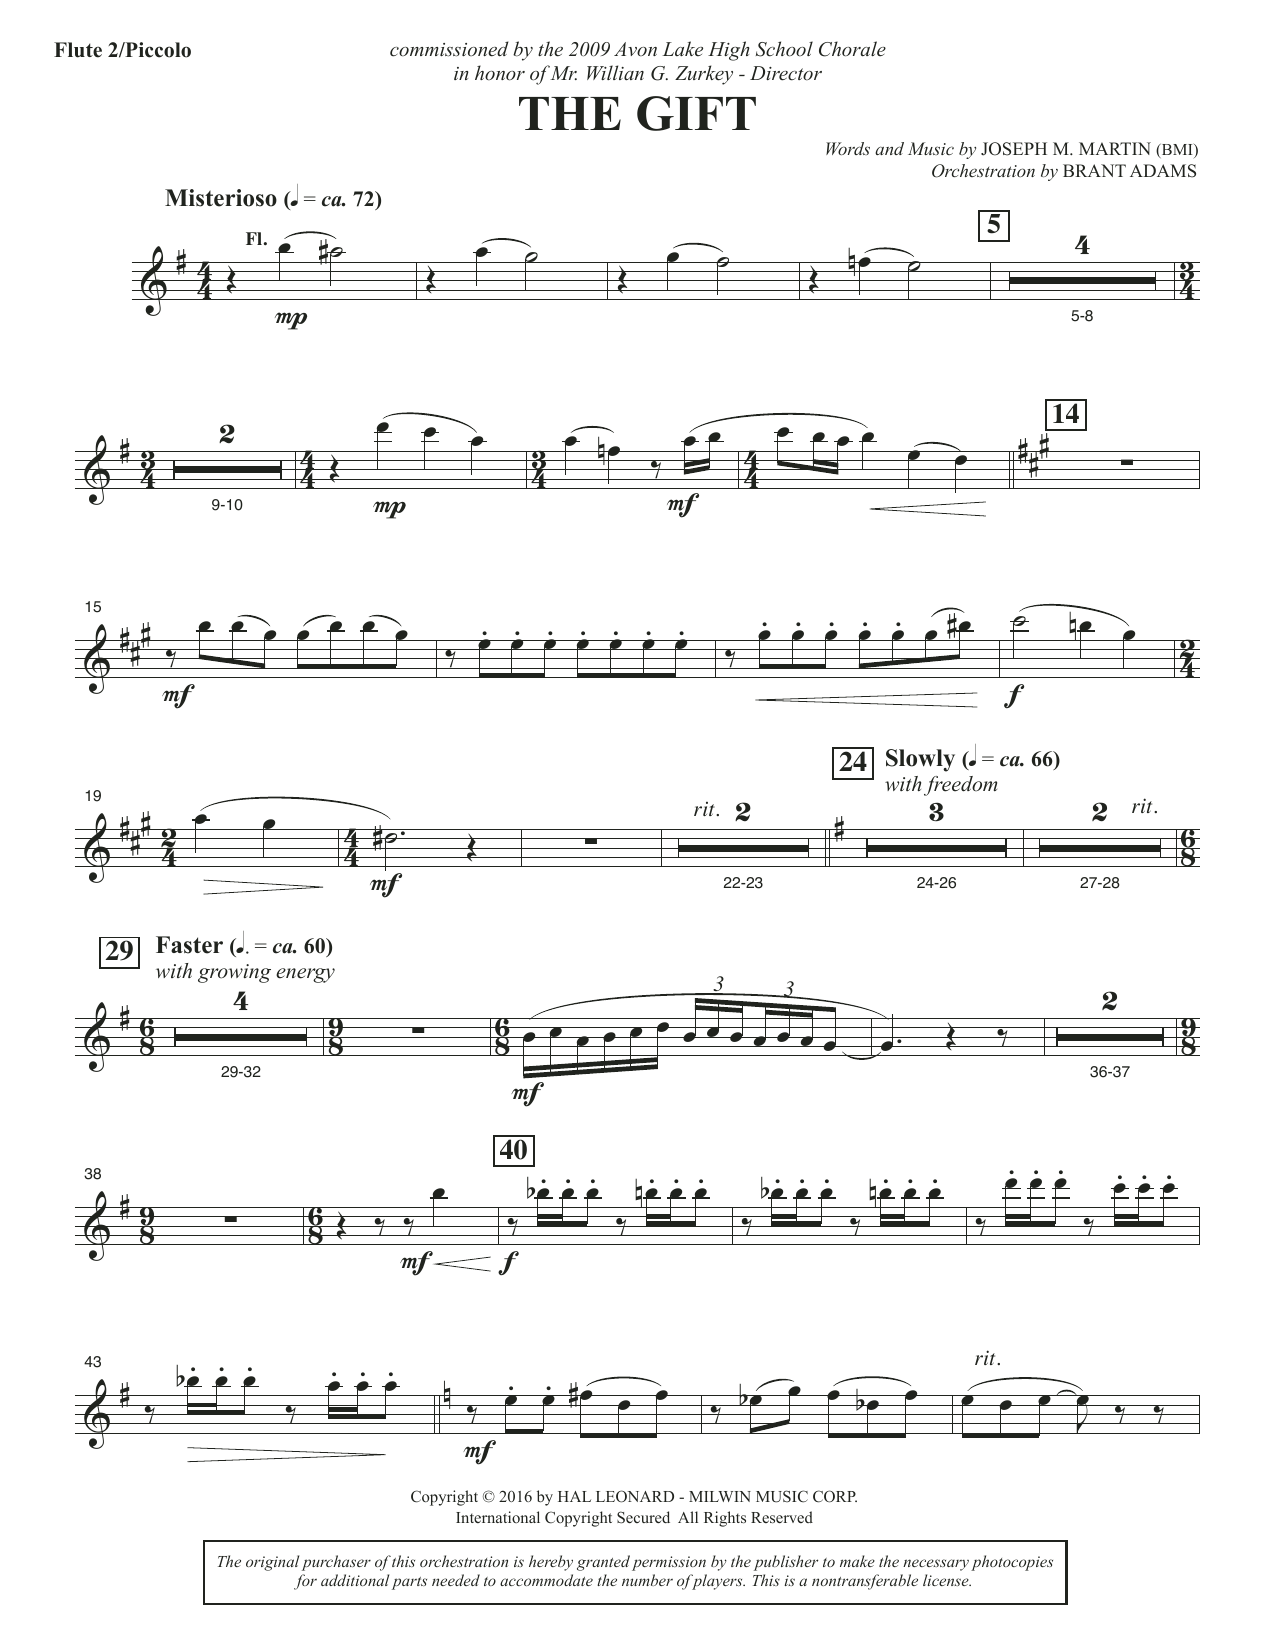 Joseph M. Martin The Gift - Flute 2 (Piccolo) sheet music notes and chords. Download Printable PDF.